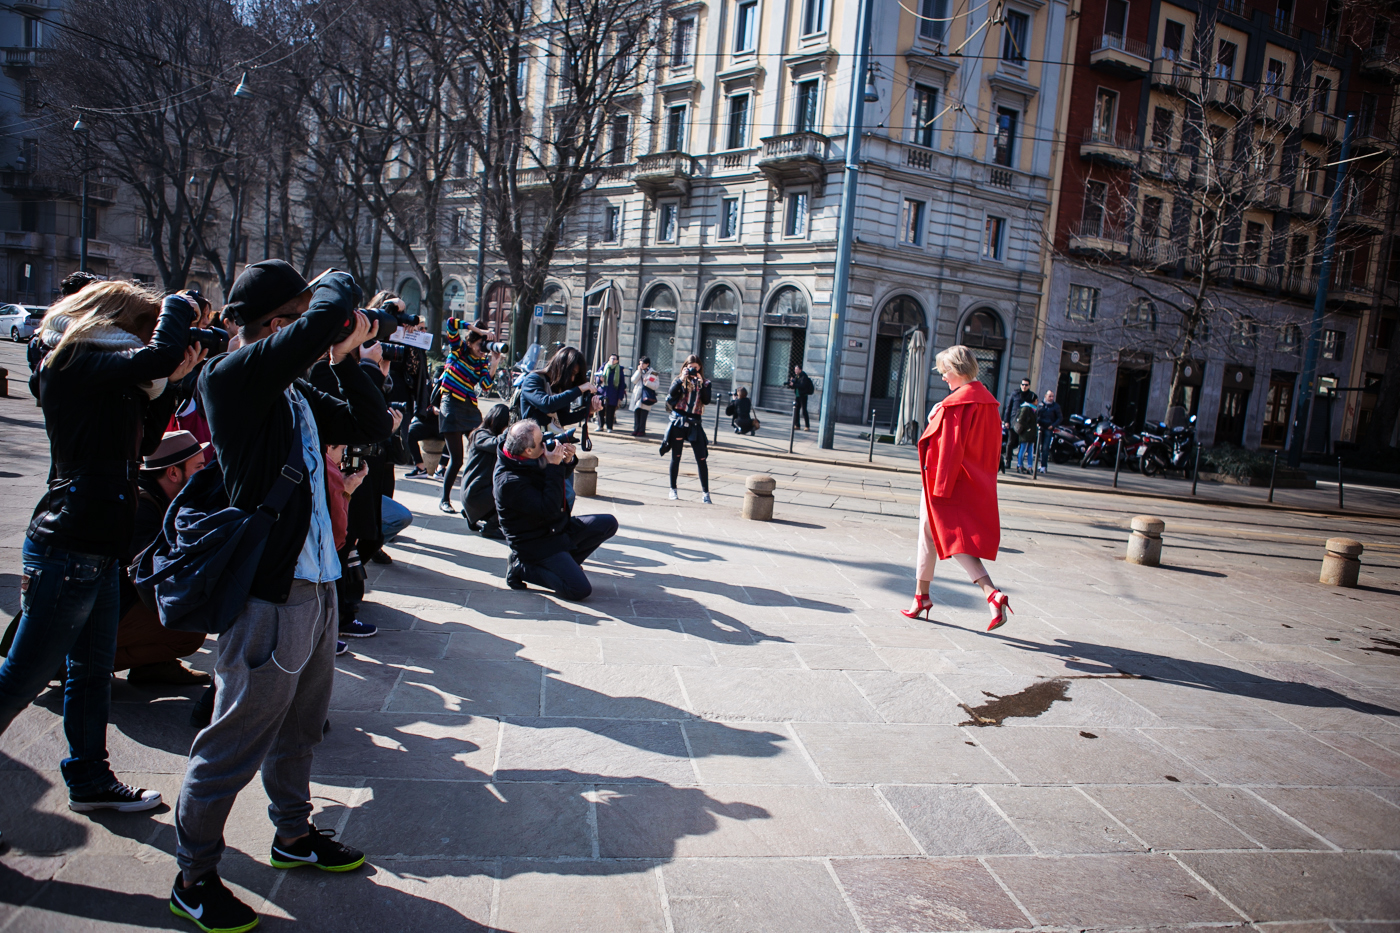 thecablook darya kamalova russian italian fashion blogger blonde short hair pixie cut street style whats inside you by eleonora carisi outfit asos long red coat steven heels shopbop milan fashion week aw14 15 arco della pace just cavalli-27 copy